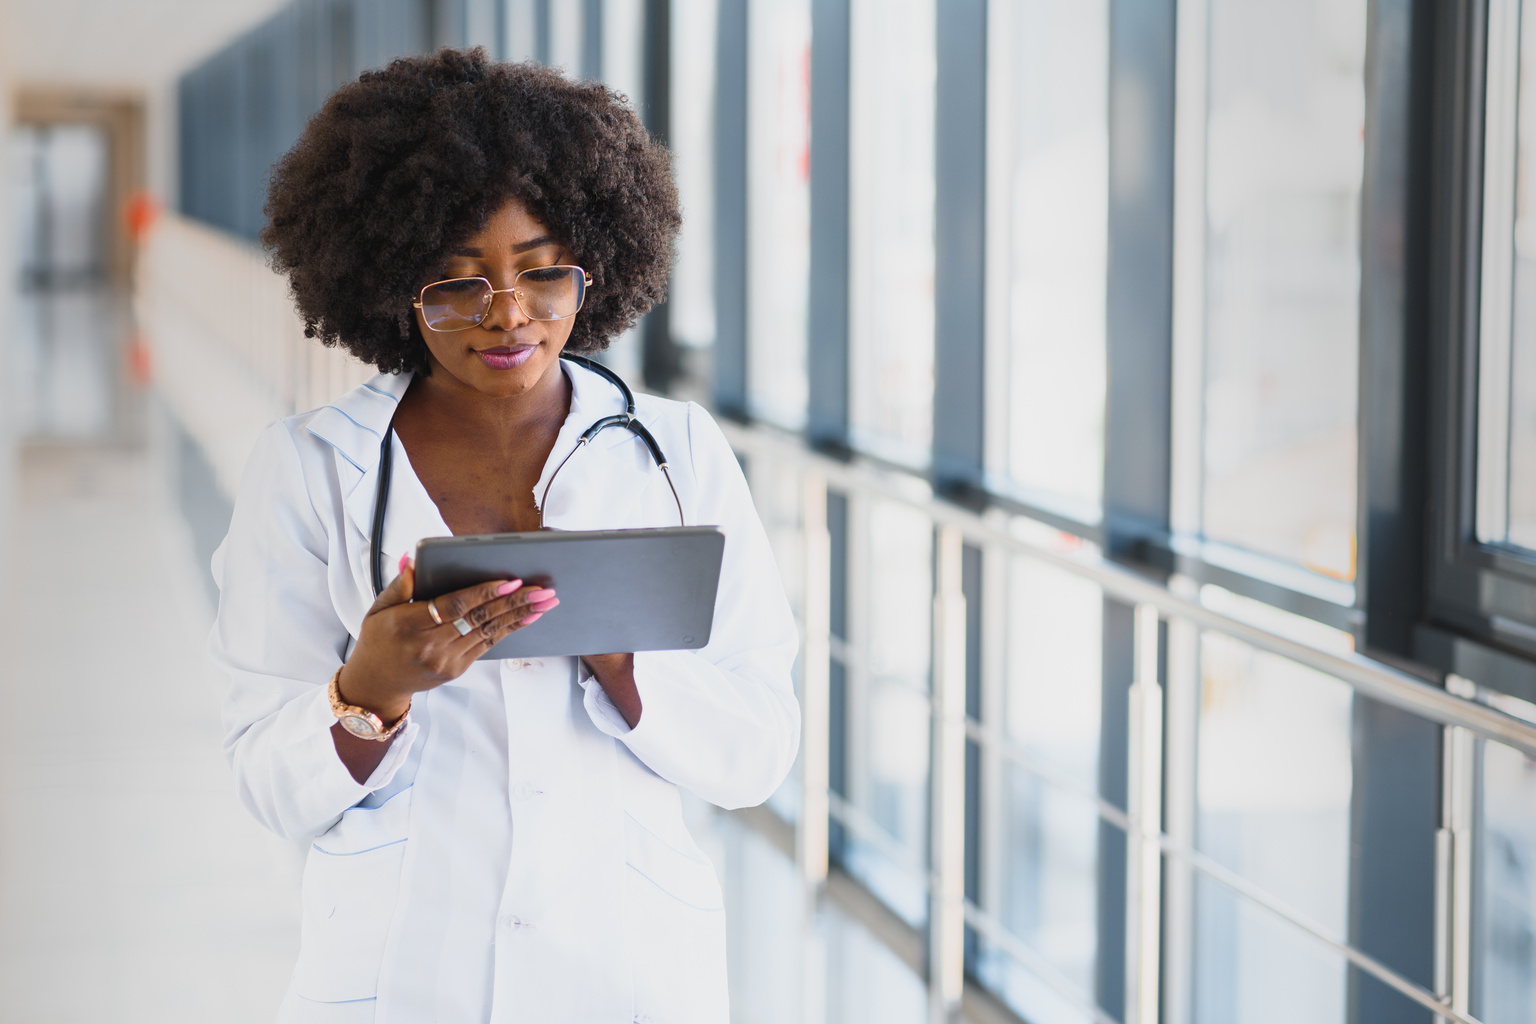 Doctor walking down hall with tablet